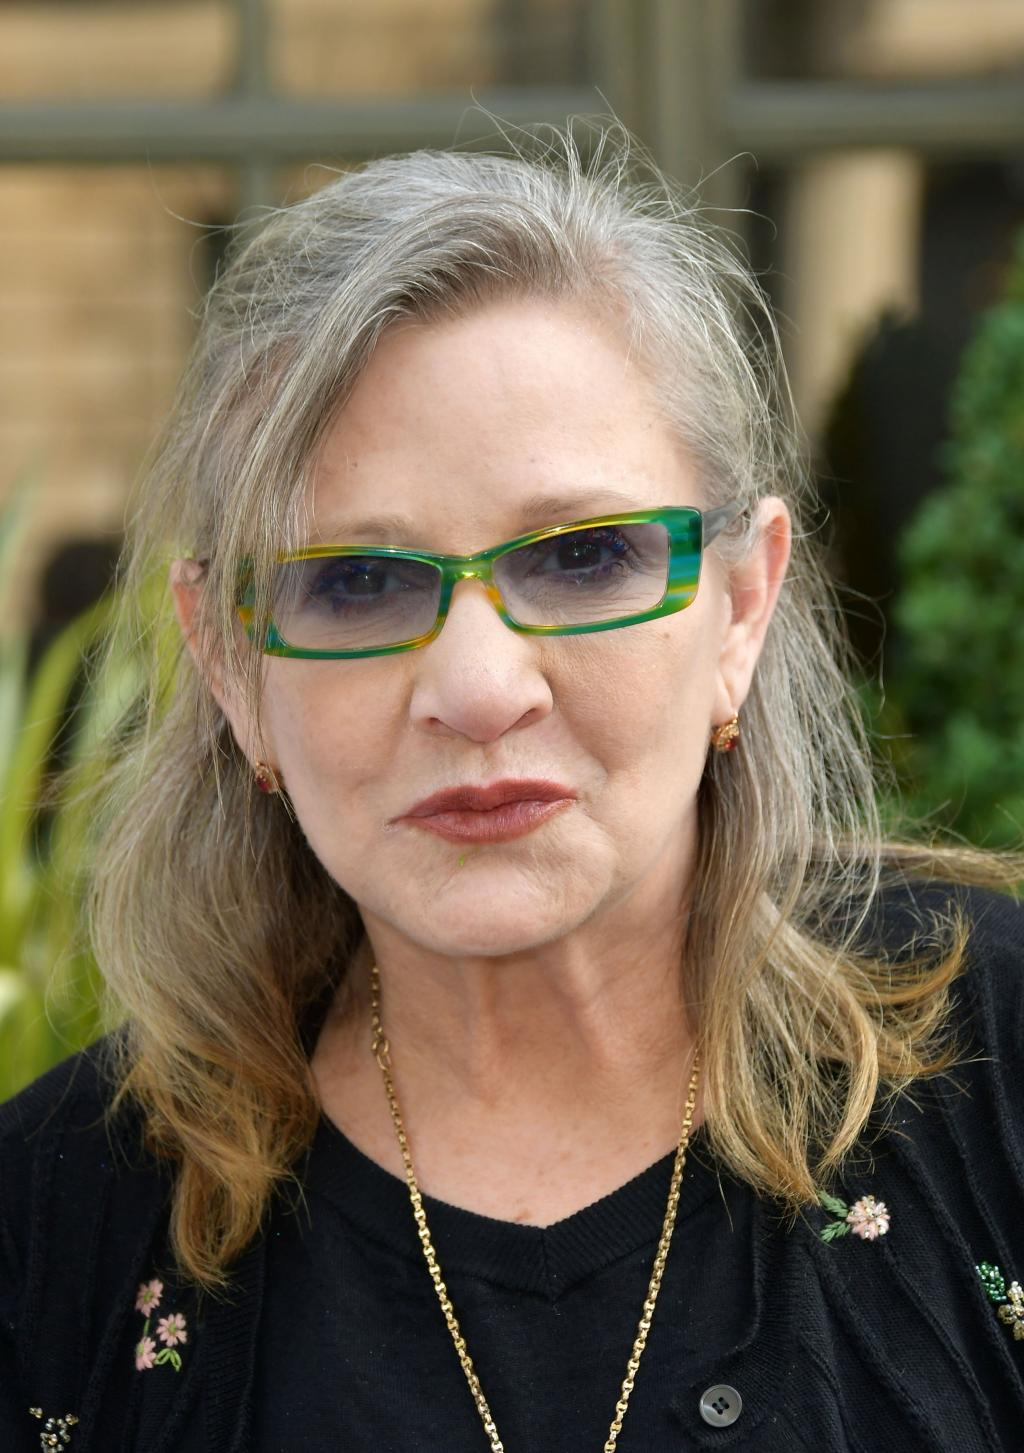 Carrie Fisher Died From Sleep Apnea And Other Factors, Coroner Says